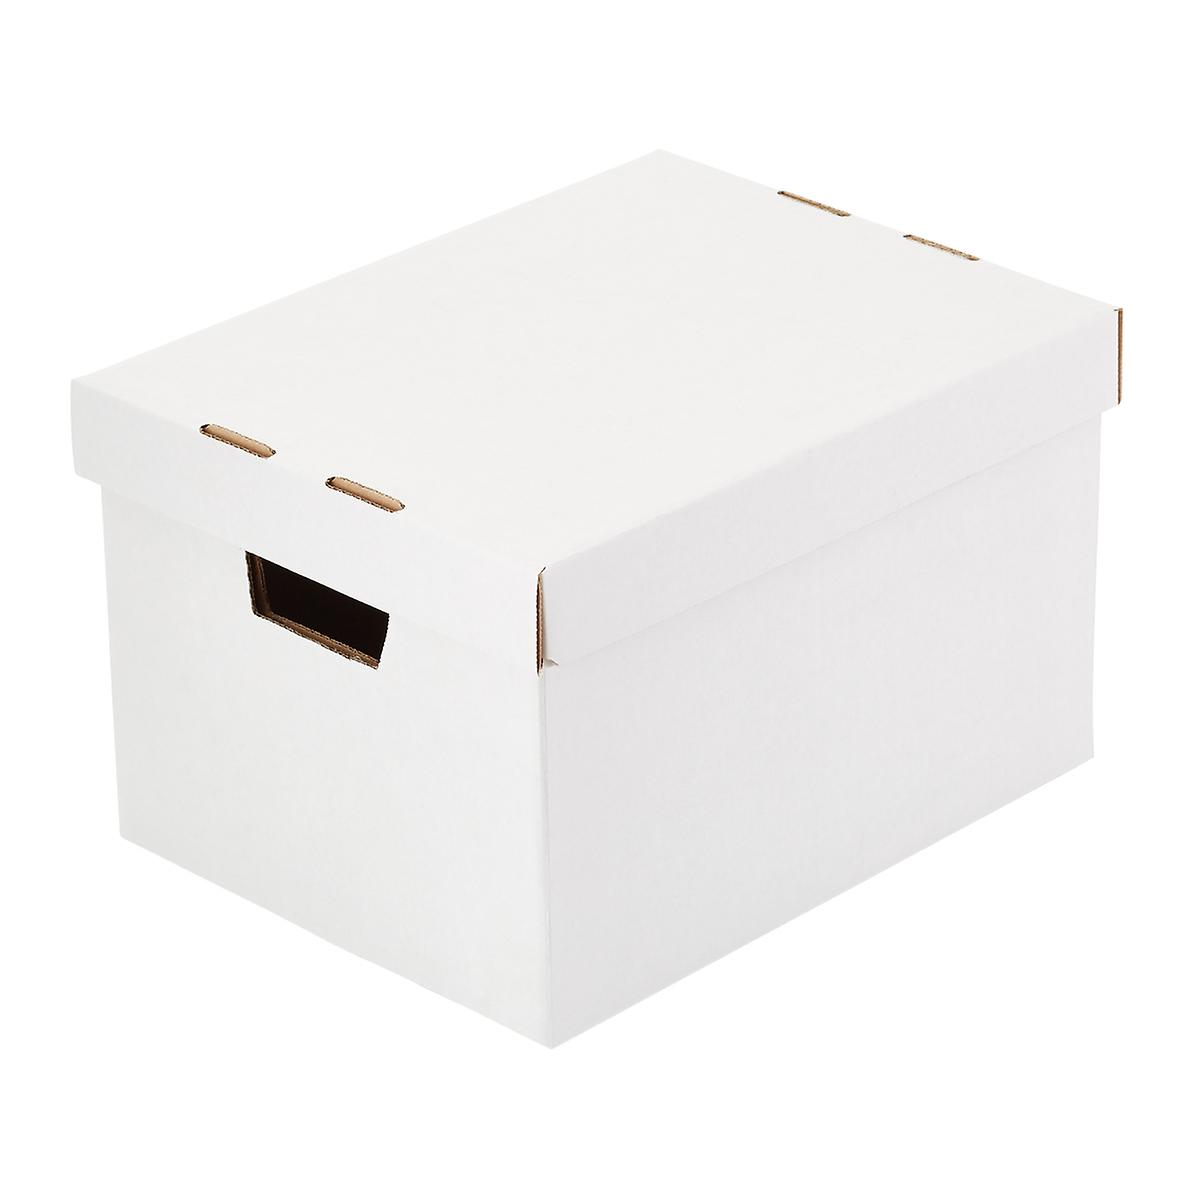 Our Best Box